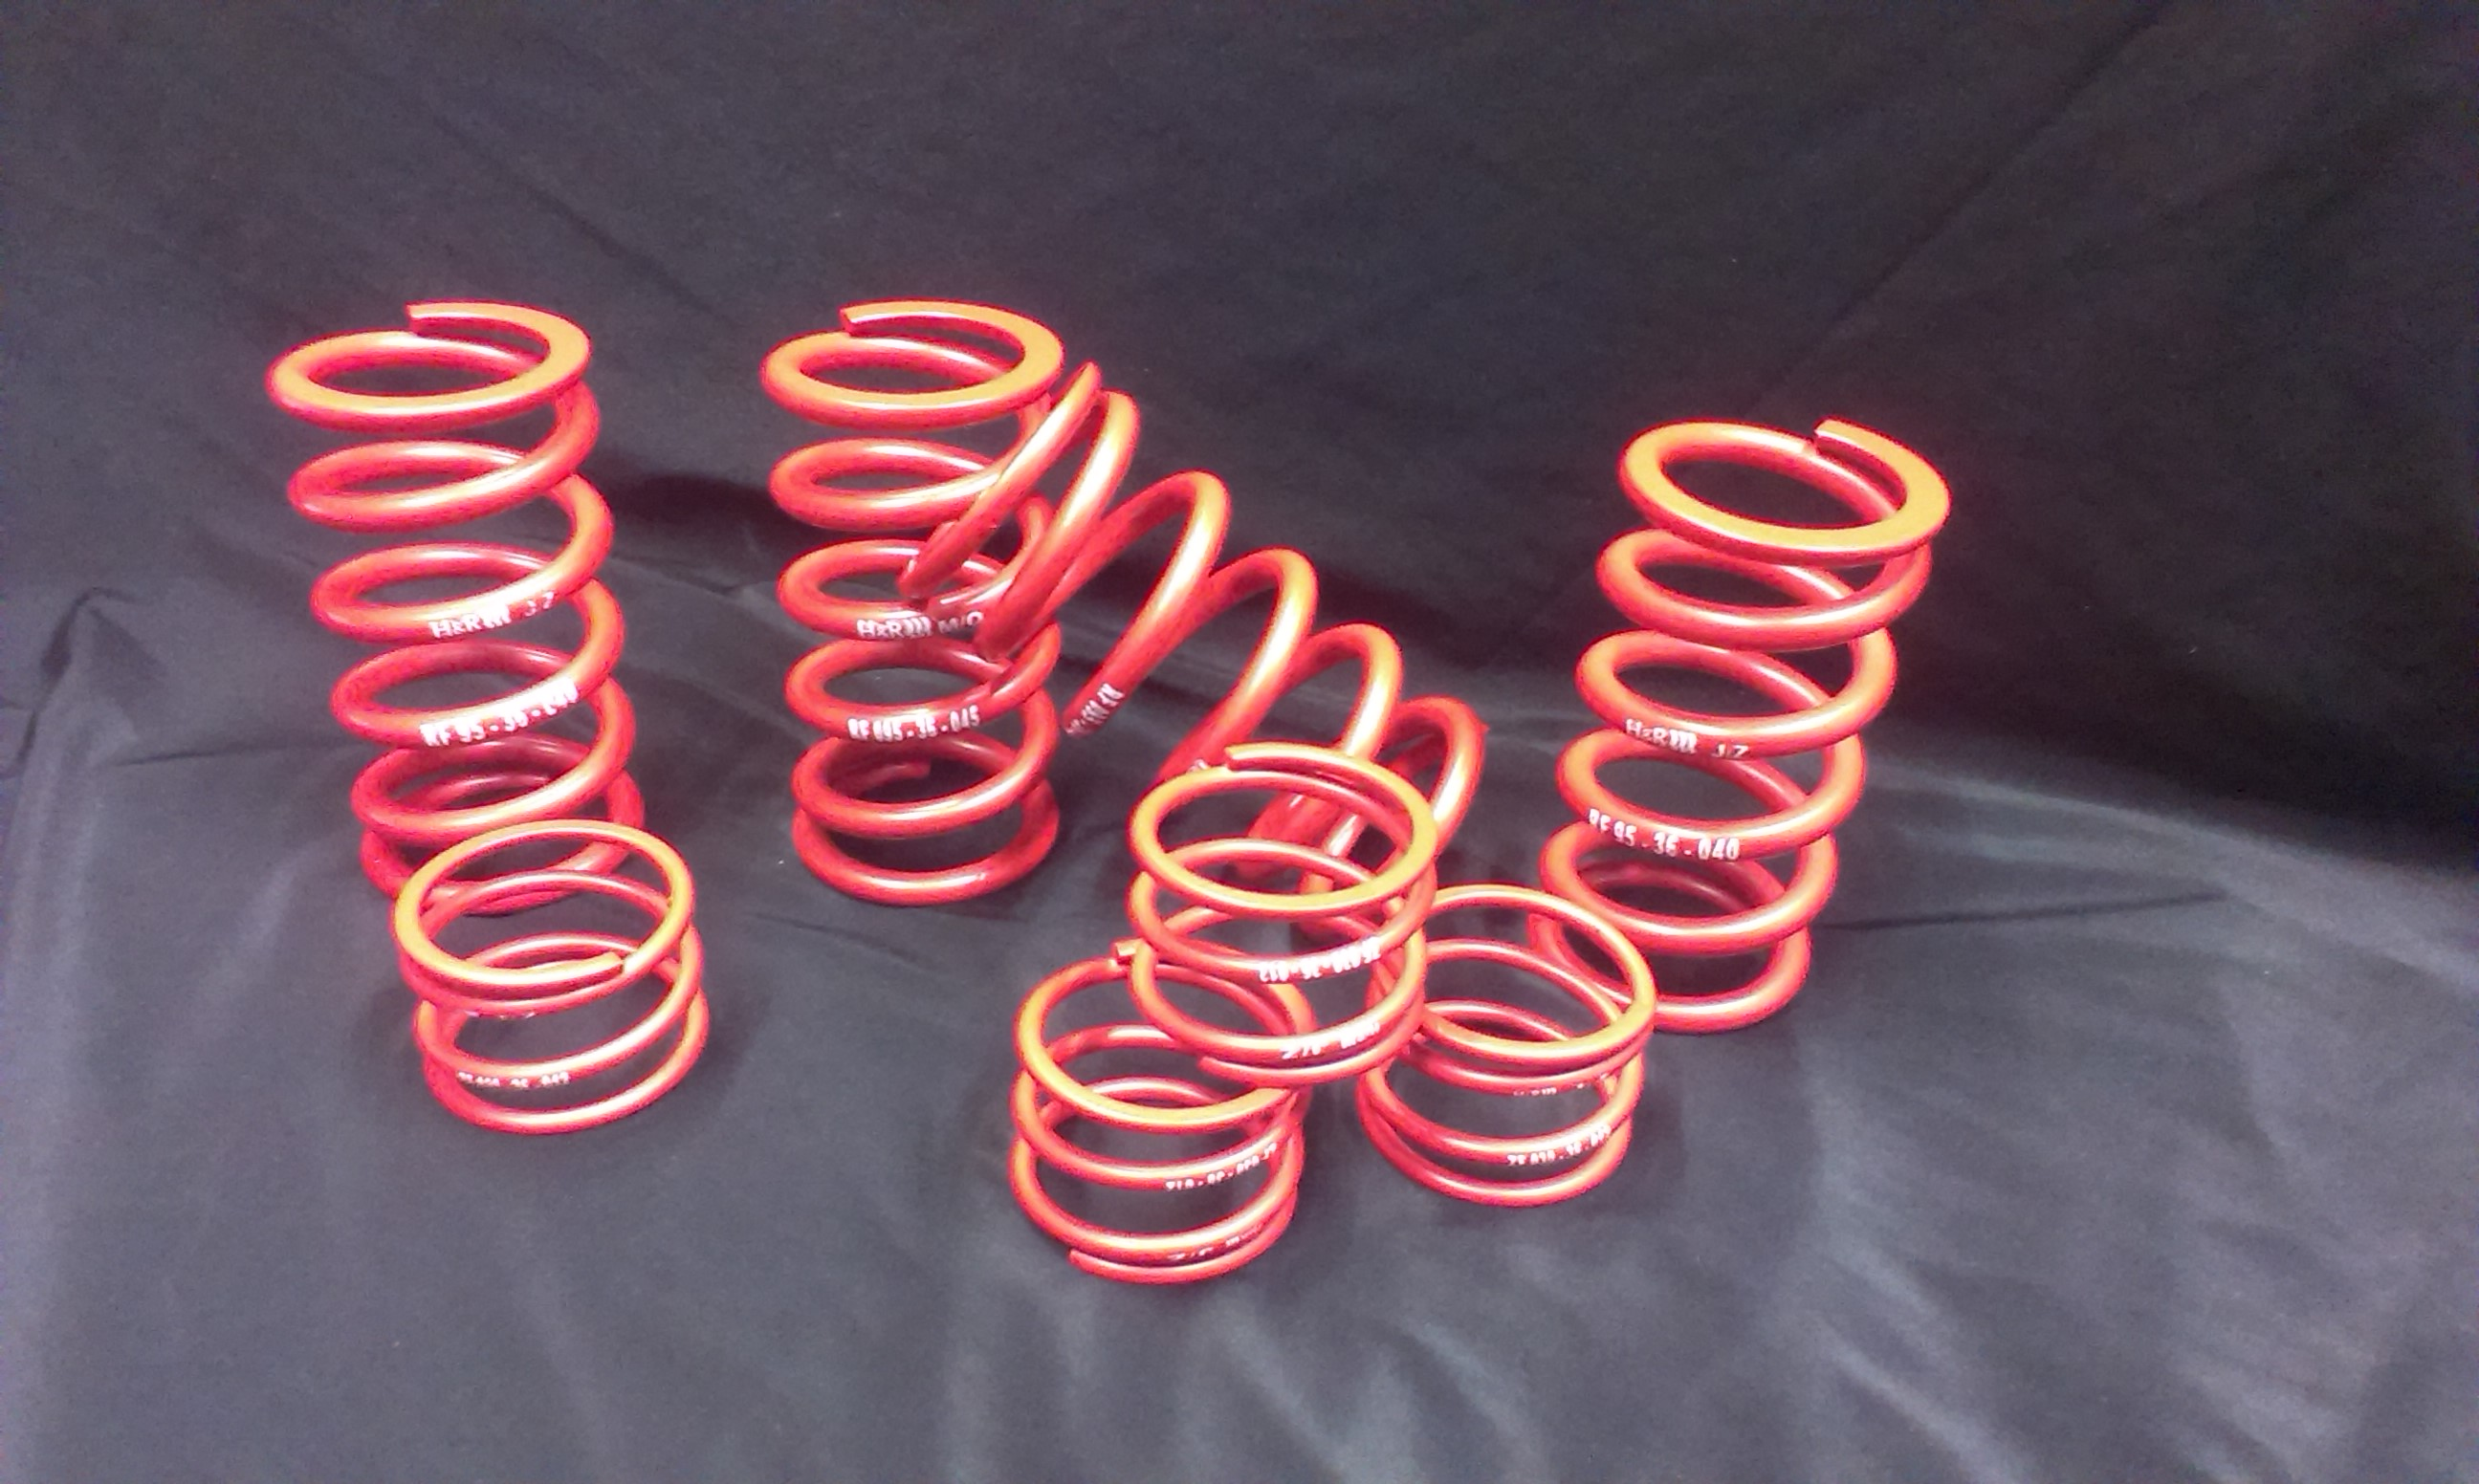 Springs by the professional suspension manufacturer H&R